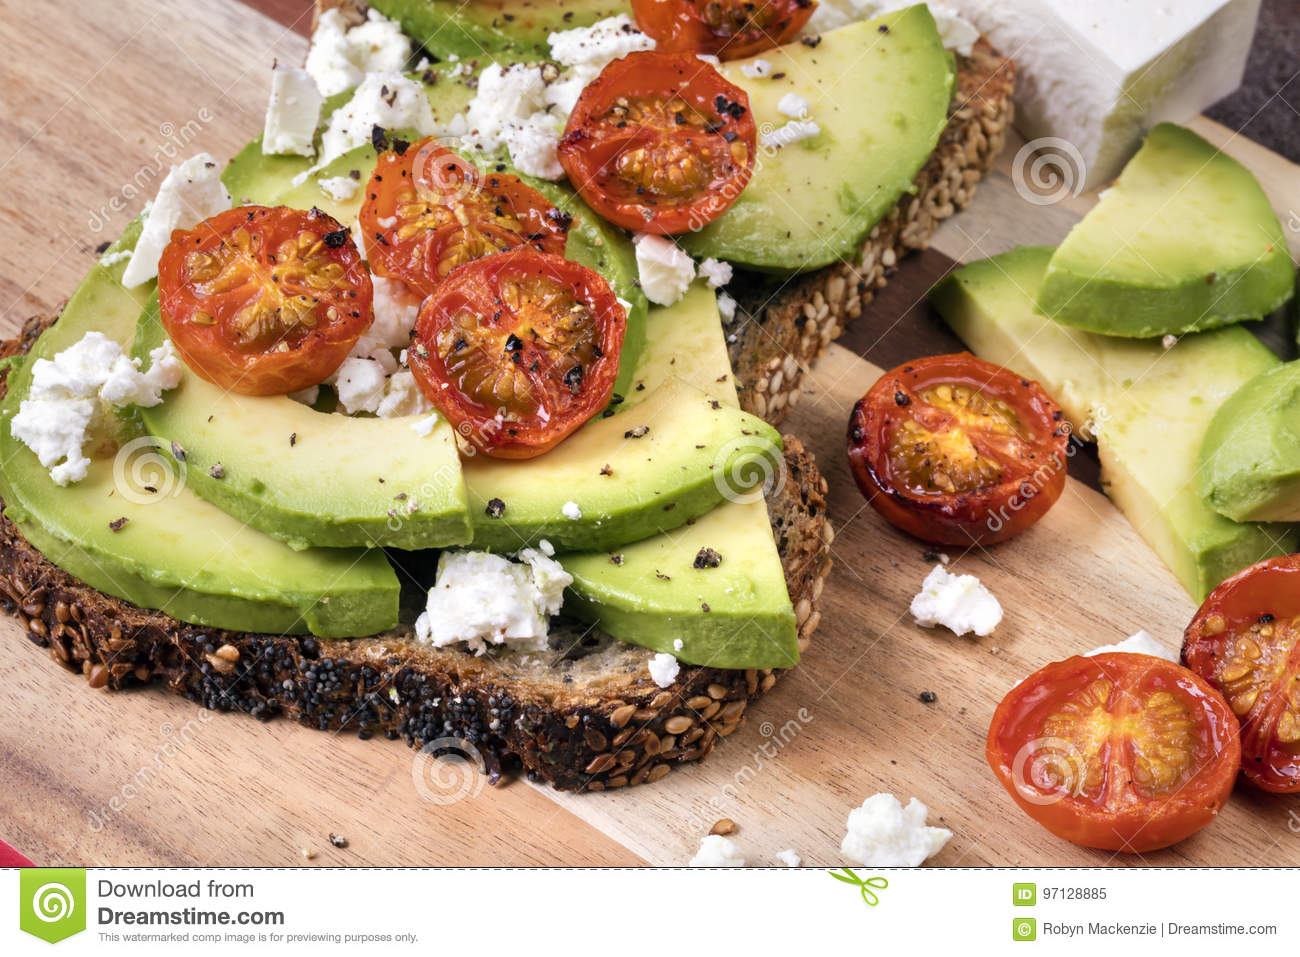 Download Avocado Toast With Cherry Tomatoes And Feta Cheese Stock Image - Image of cheese, roast: 97128885